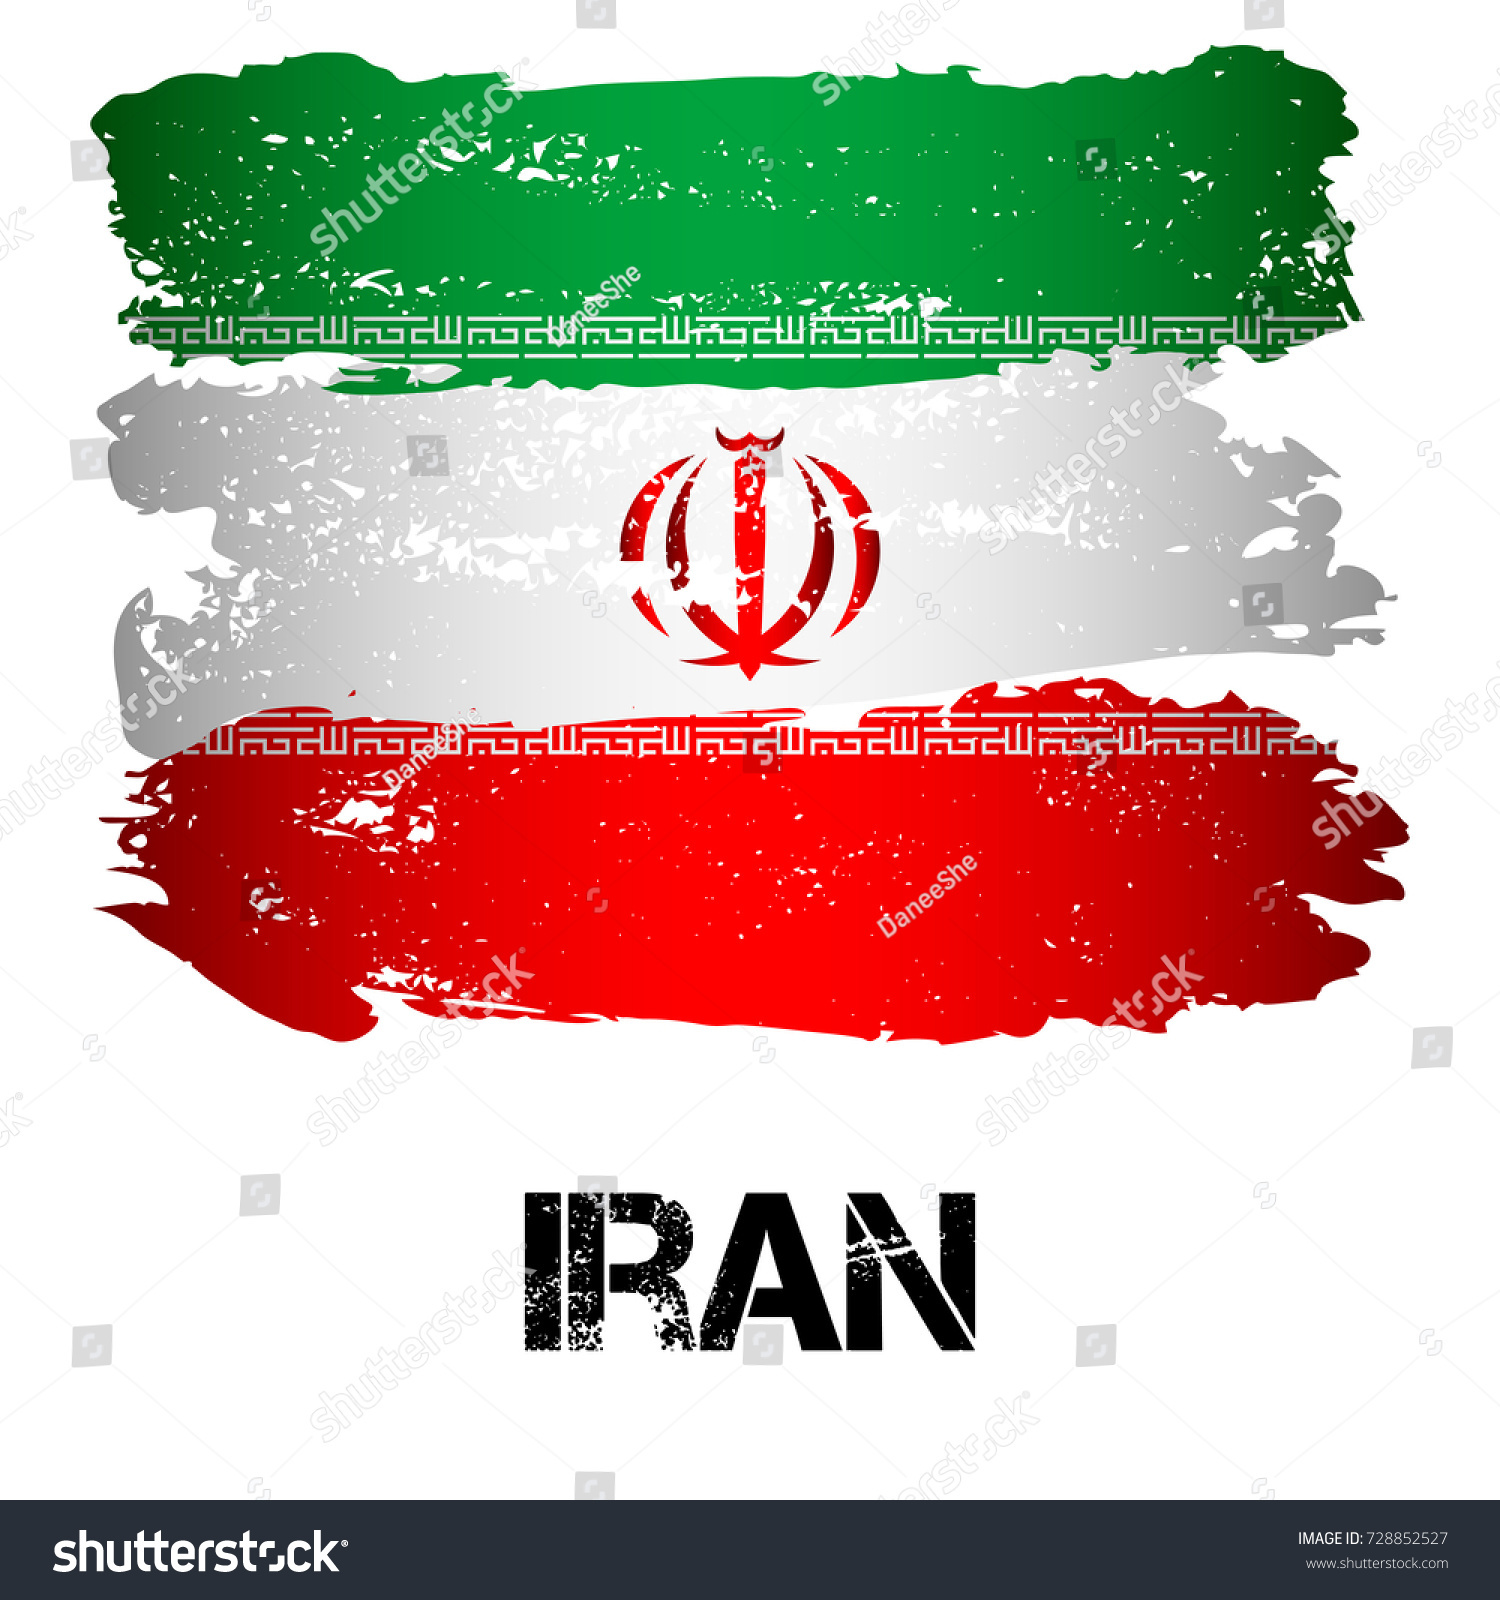 Flag Iran Brush Strokes Grunge Style Stock Vector HD (Royalty Free ...